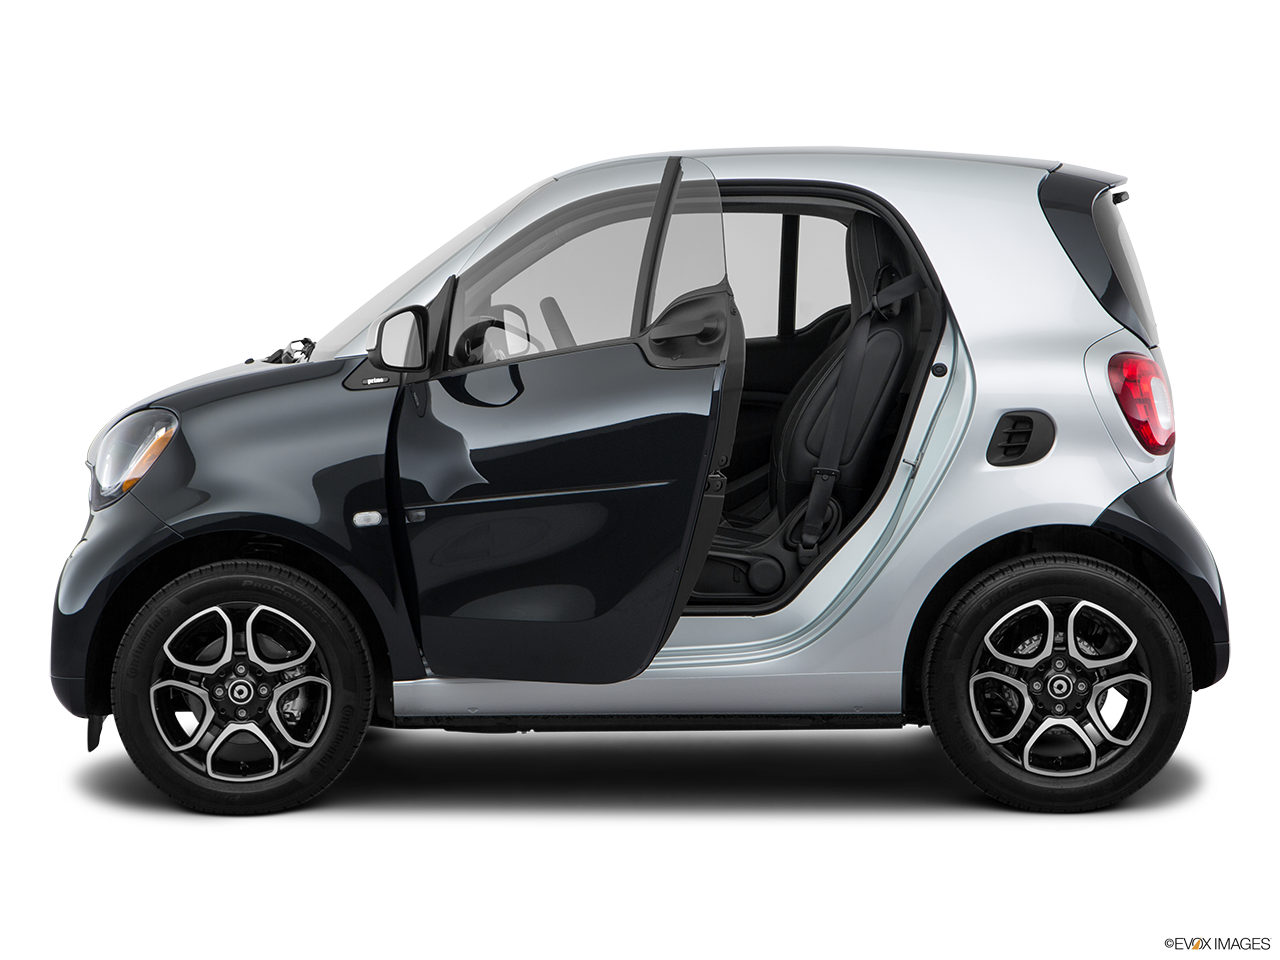 Side view of the Smart fortwo electric